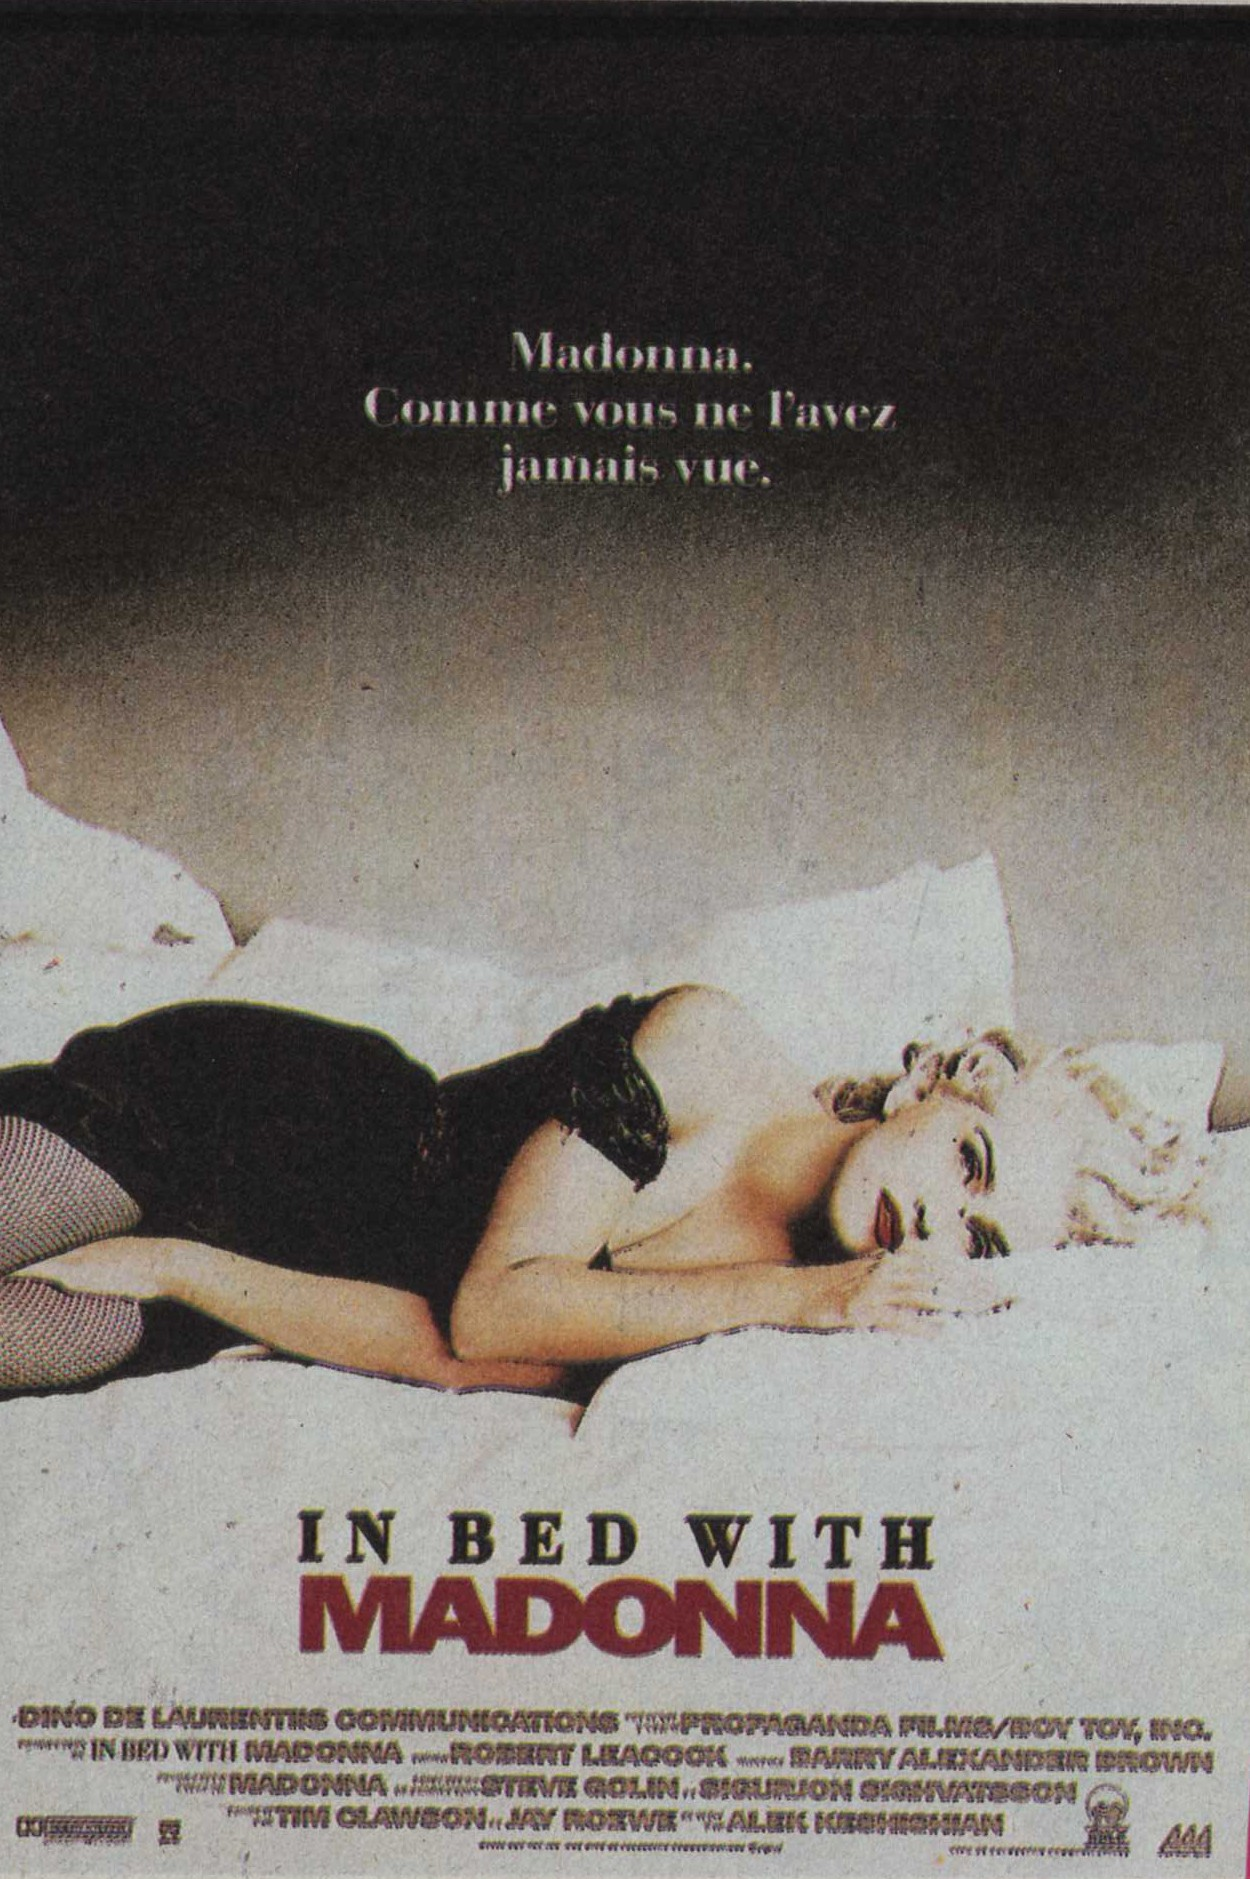 In Bed With Madonna